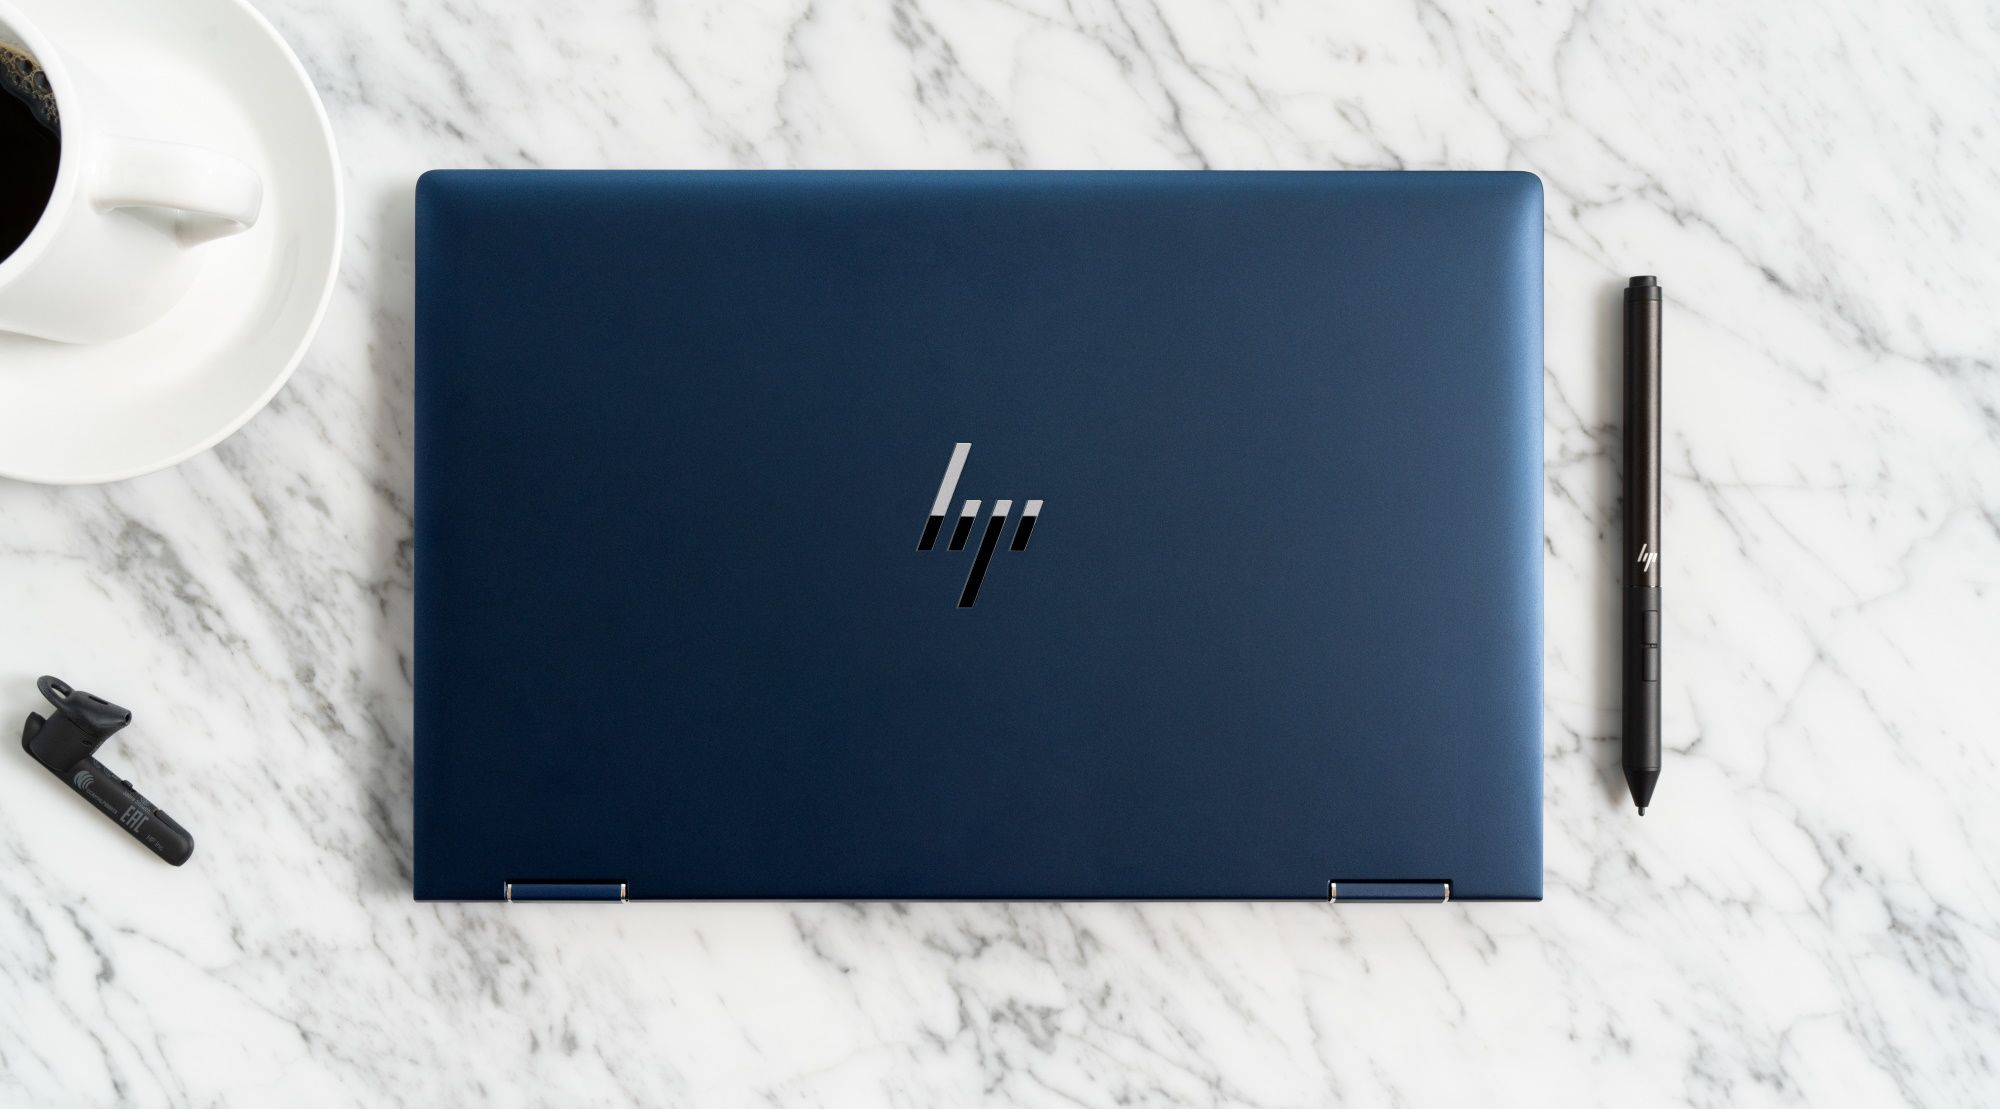 HP Elite Dragonfly is an insanely light 2in1 laptop with